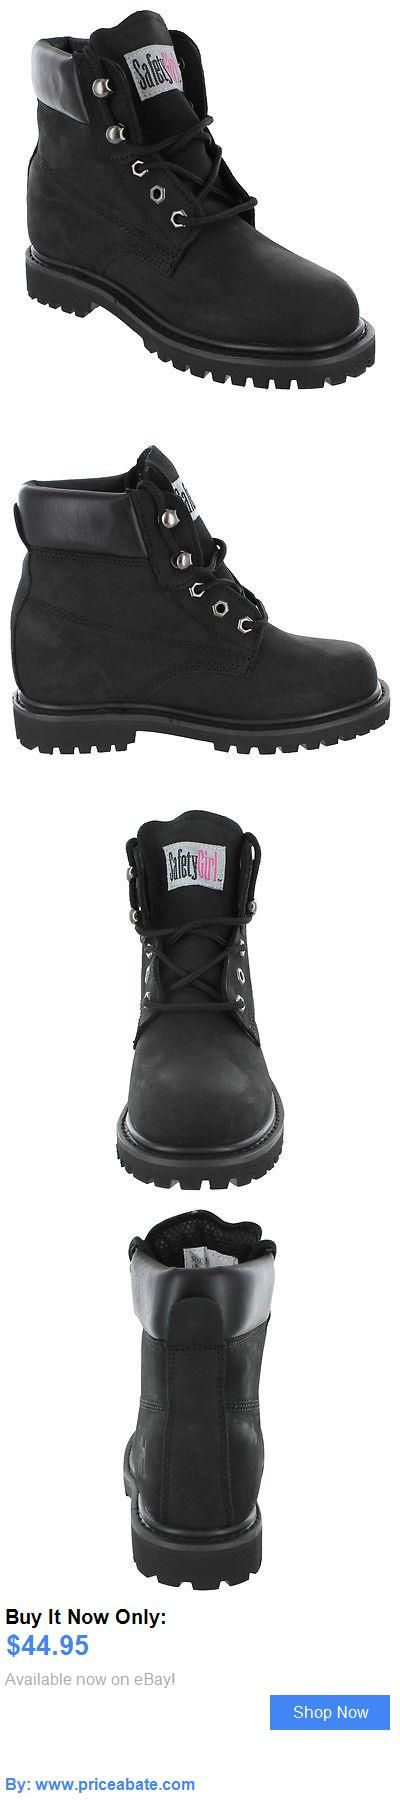 Women Boots: Safety Girl Steel Toe Waterproof Womens Work Boots - Black BUY IT NOW ONLY: $44.95 #priceabateWomenBoots OR #priceabate